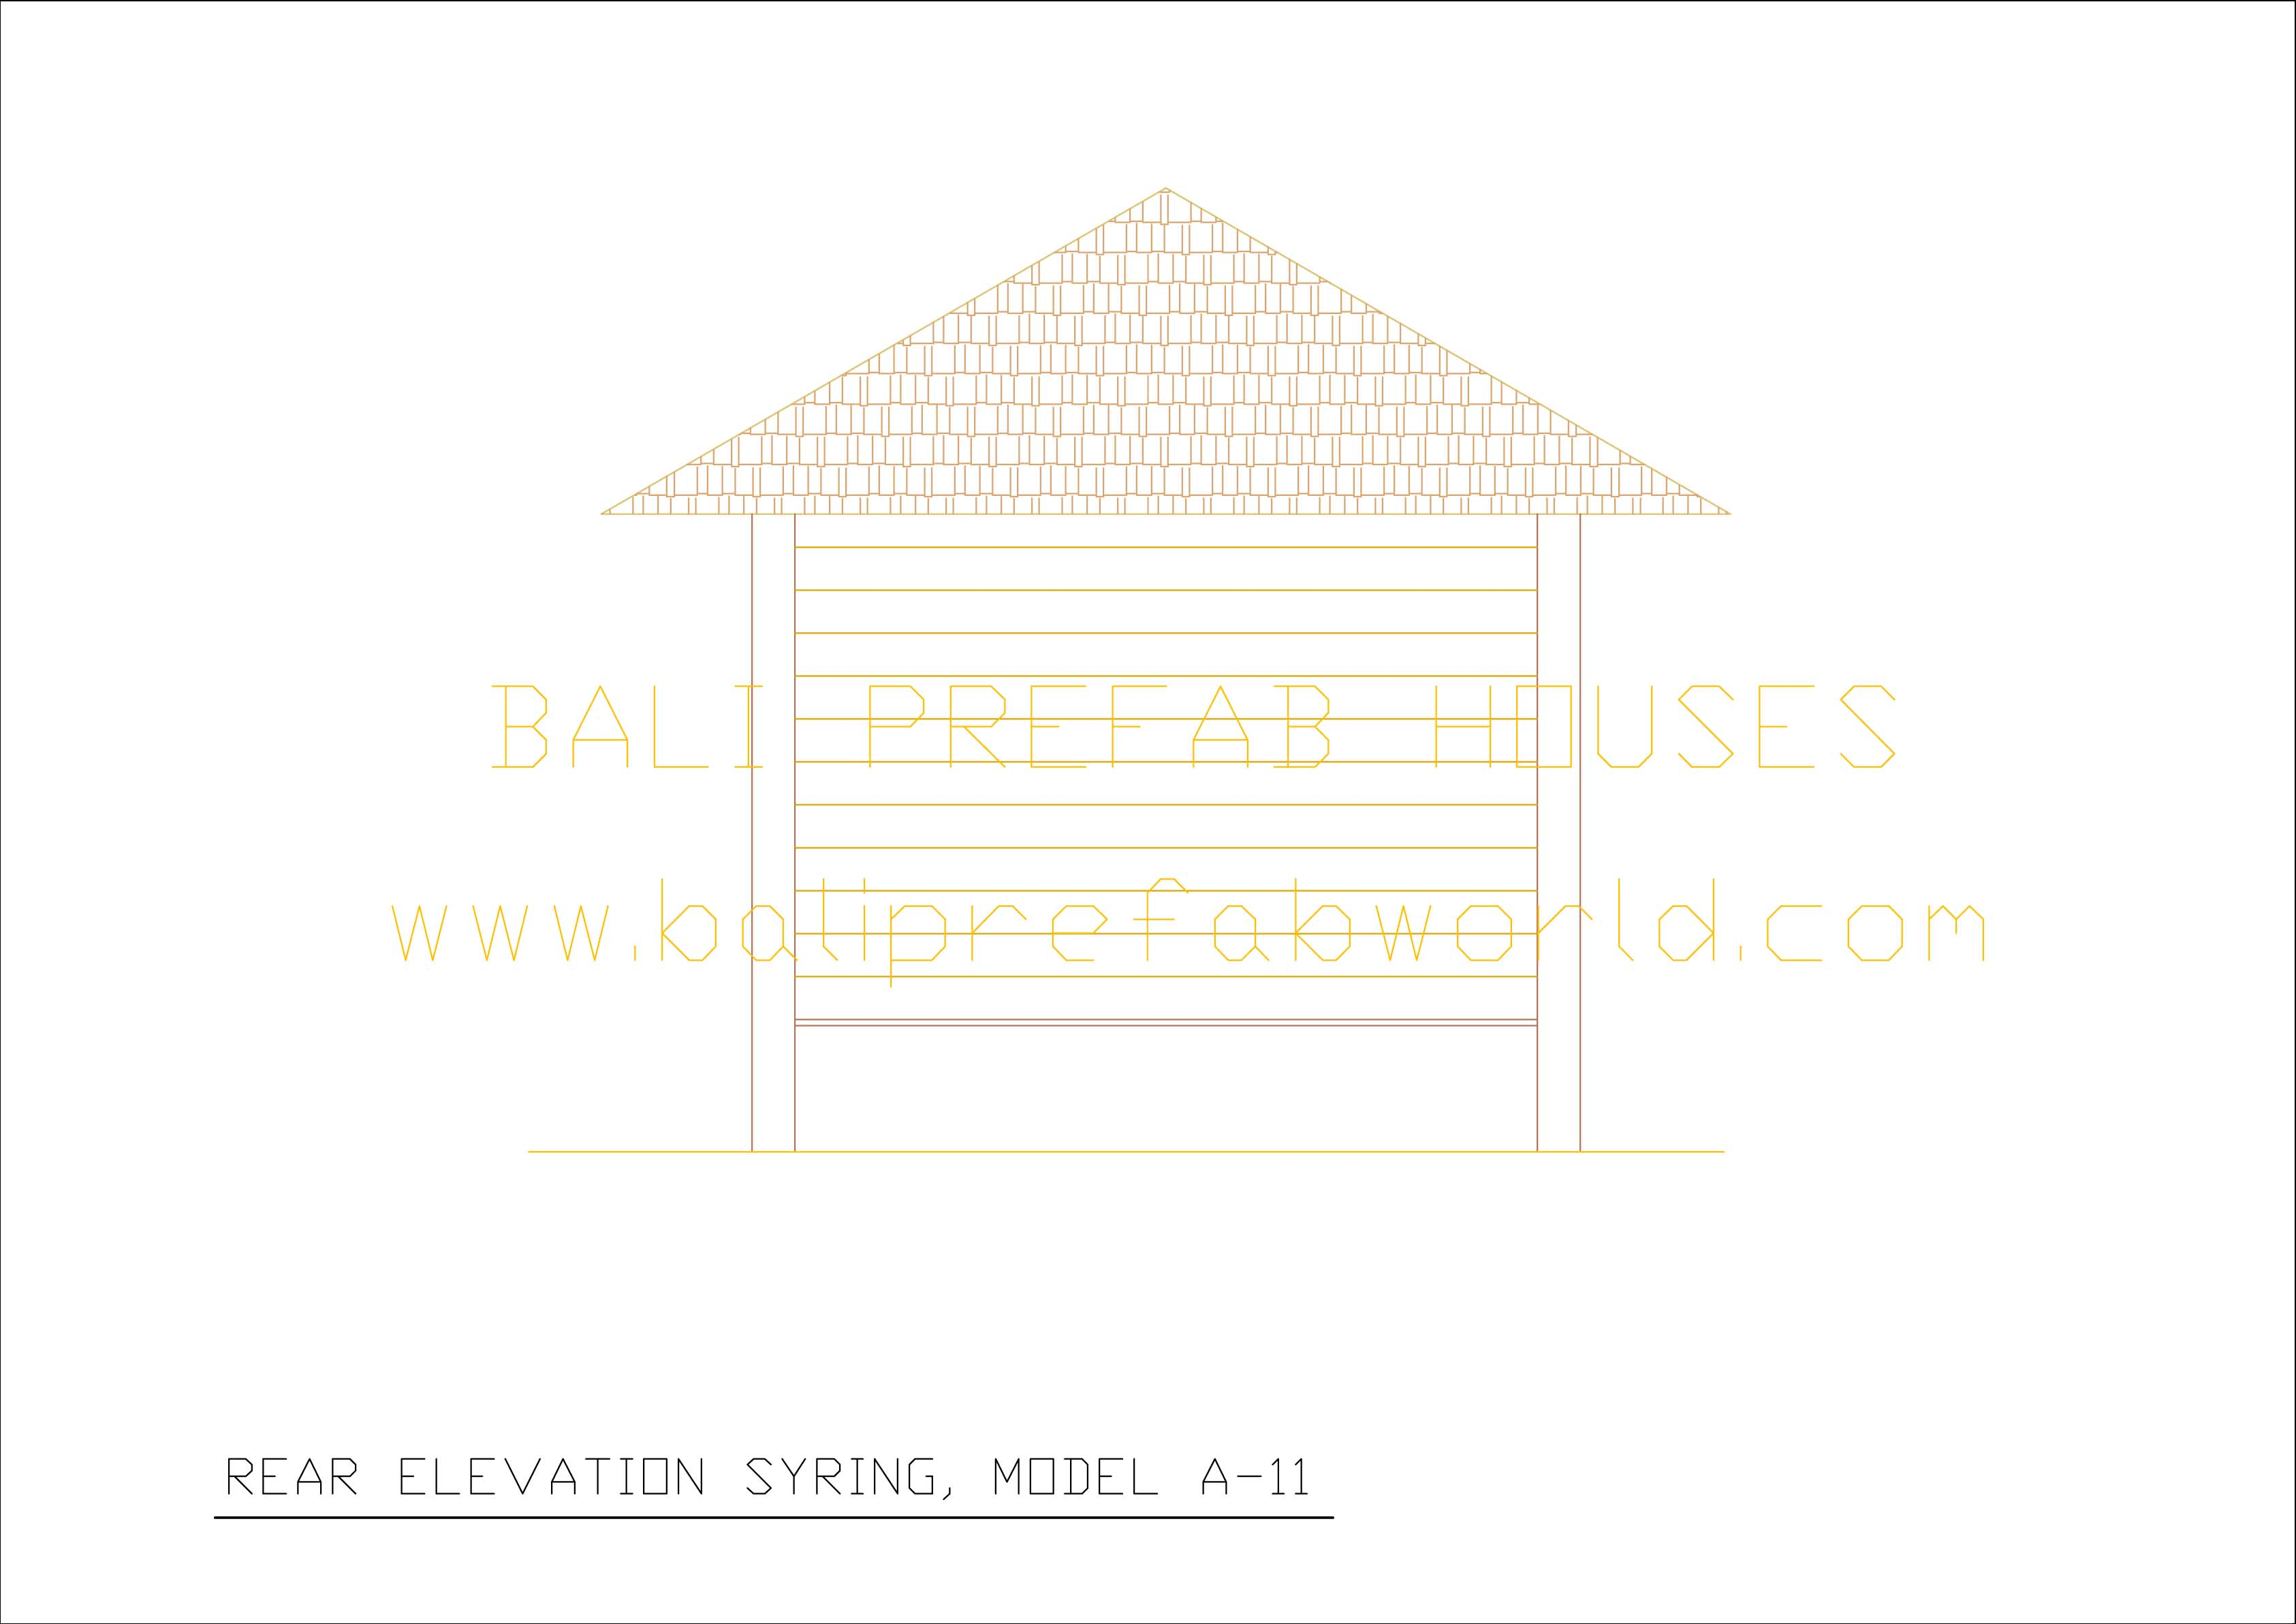 Syring for What is rear elevation